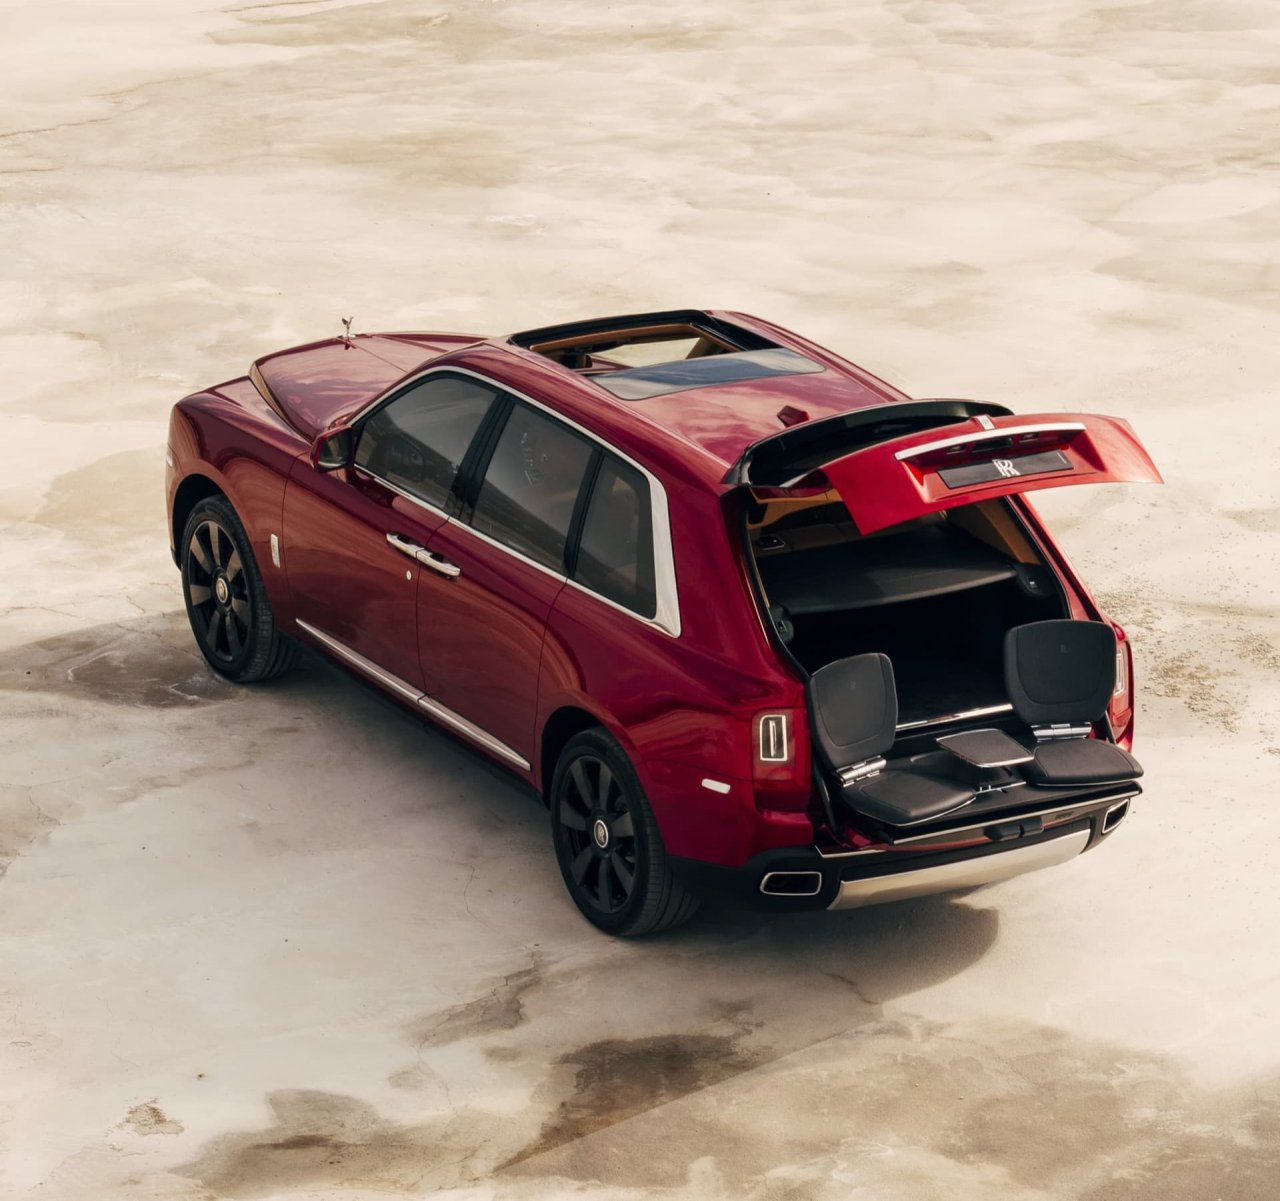 Rolls-Royce Boutique Cullinan viewing set